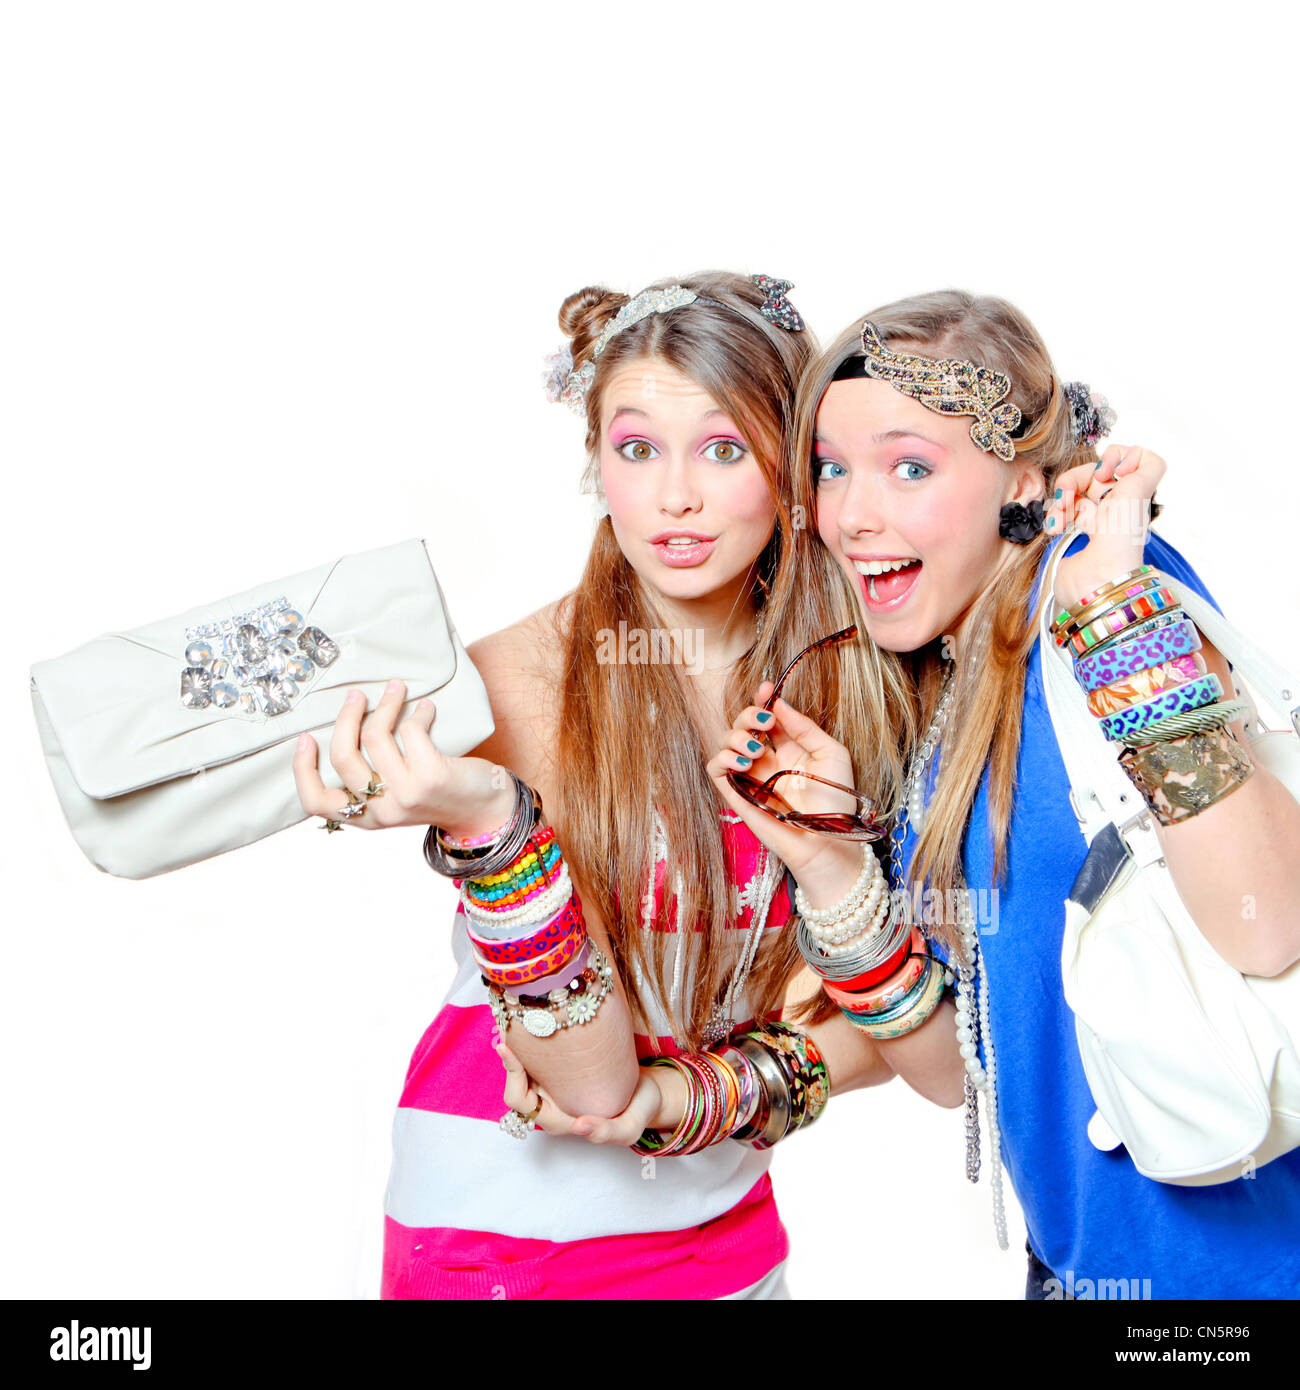 fashion kids teens or girls with bangles and accessories - Stock Image